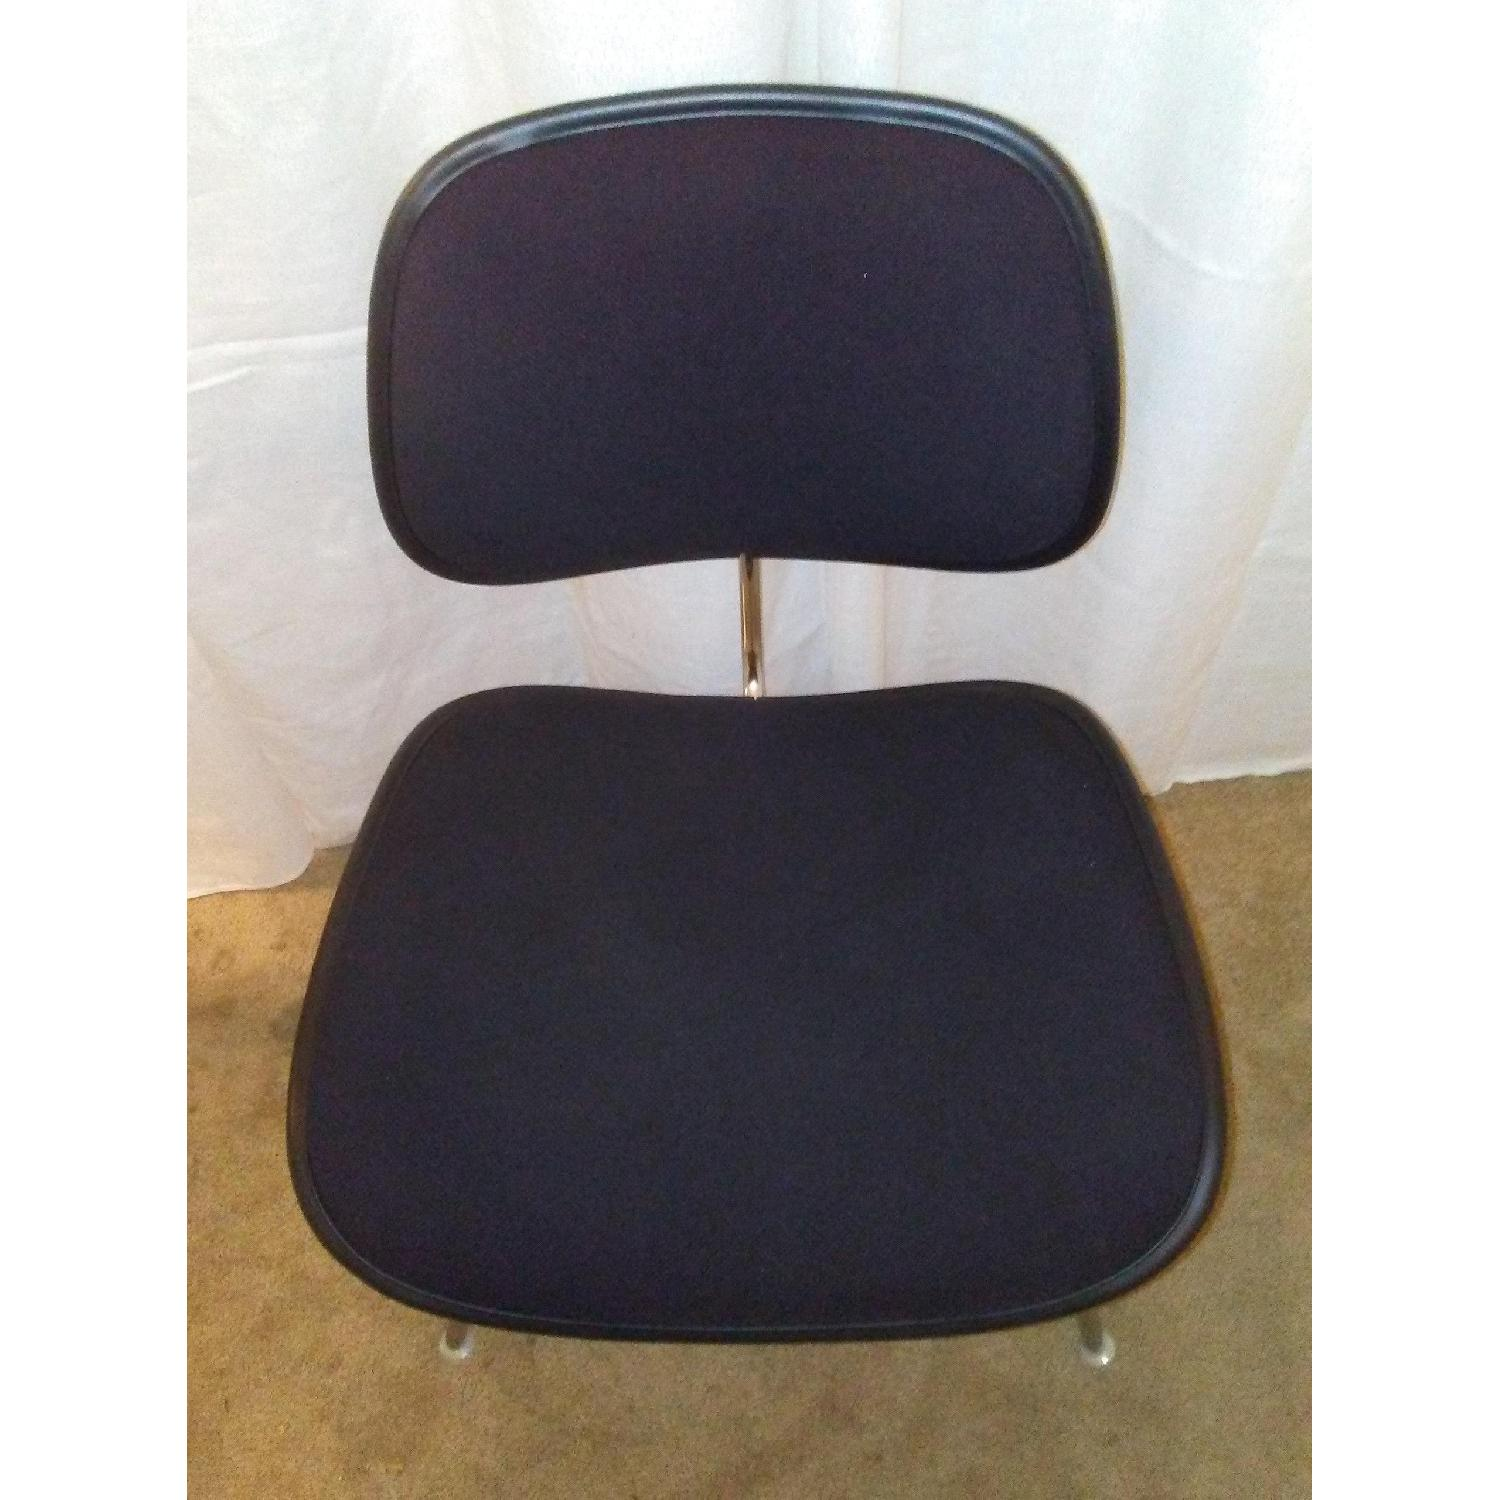 Herman Miller c.1992 Charles Eames Dining/Accent Chairs - image-11